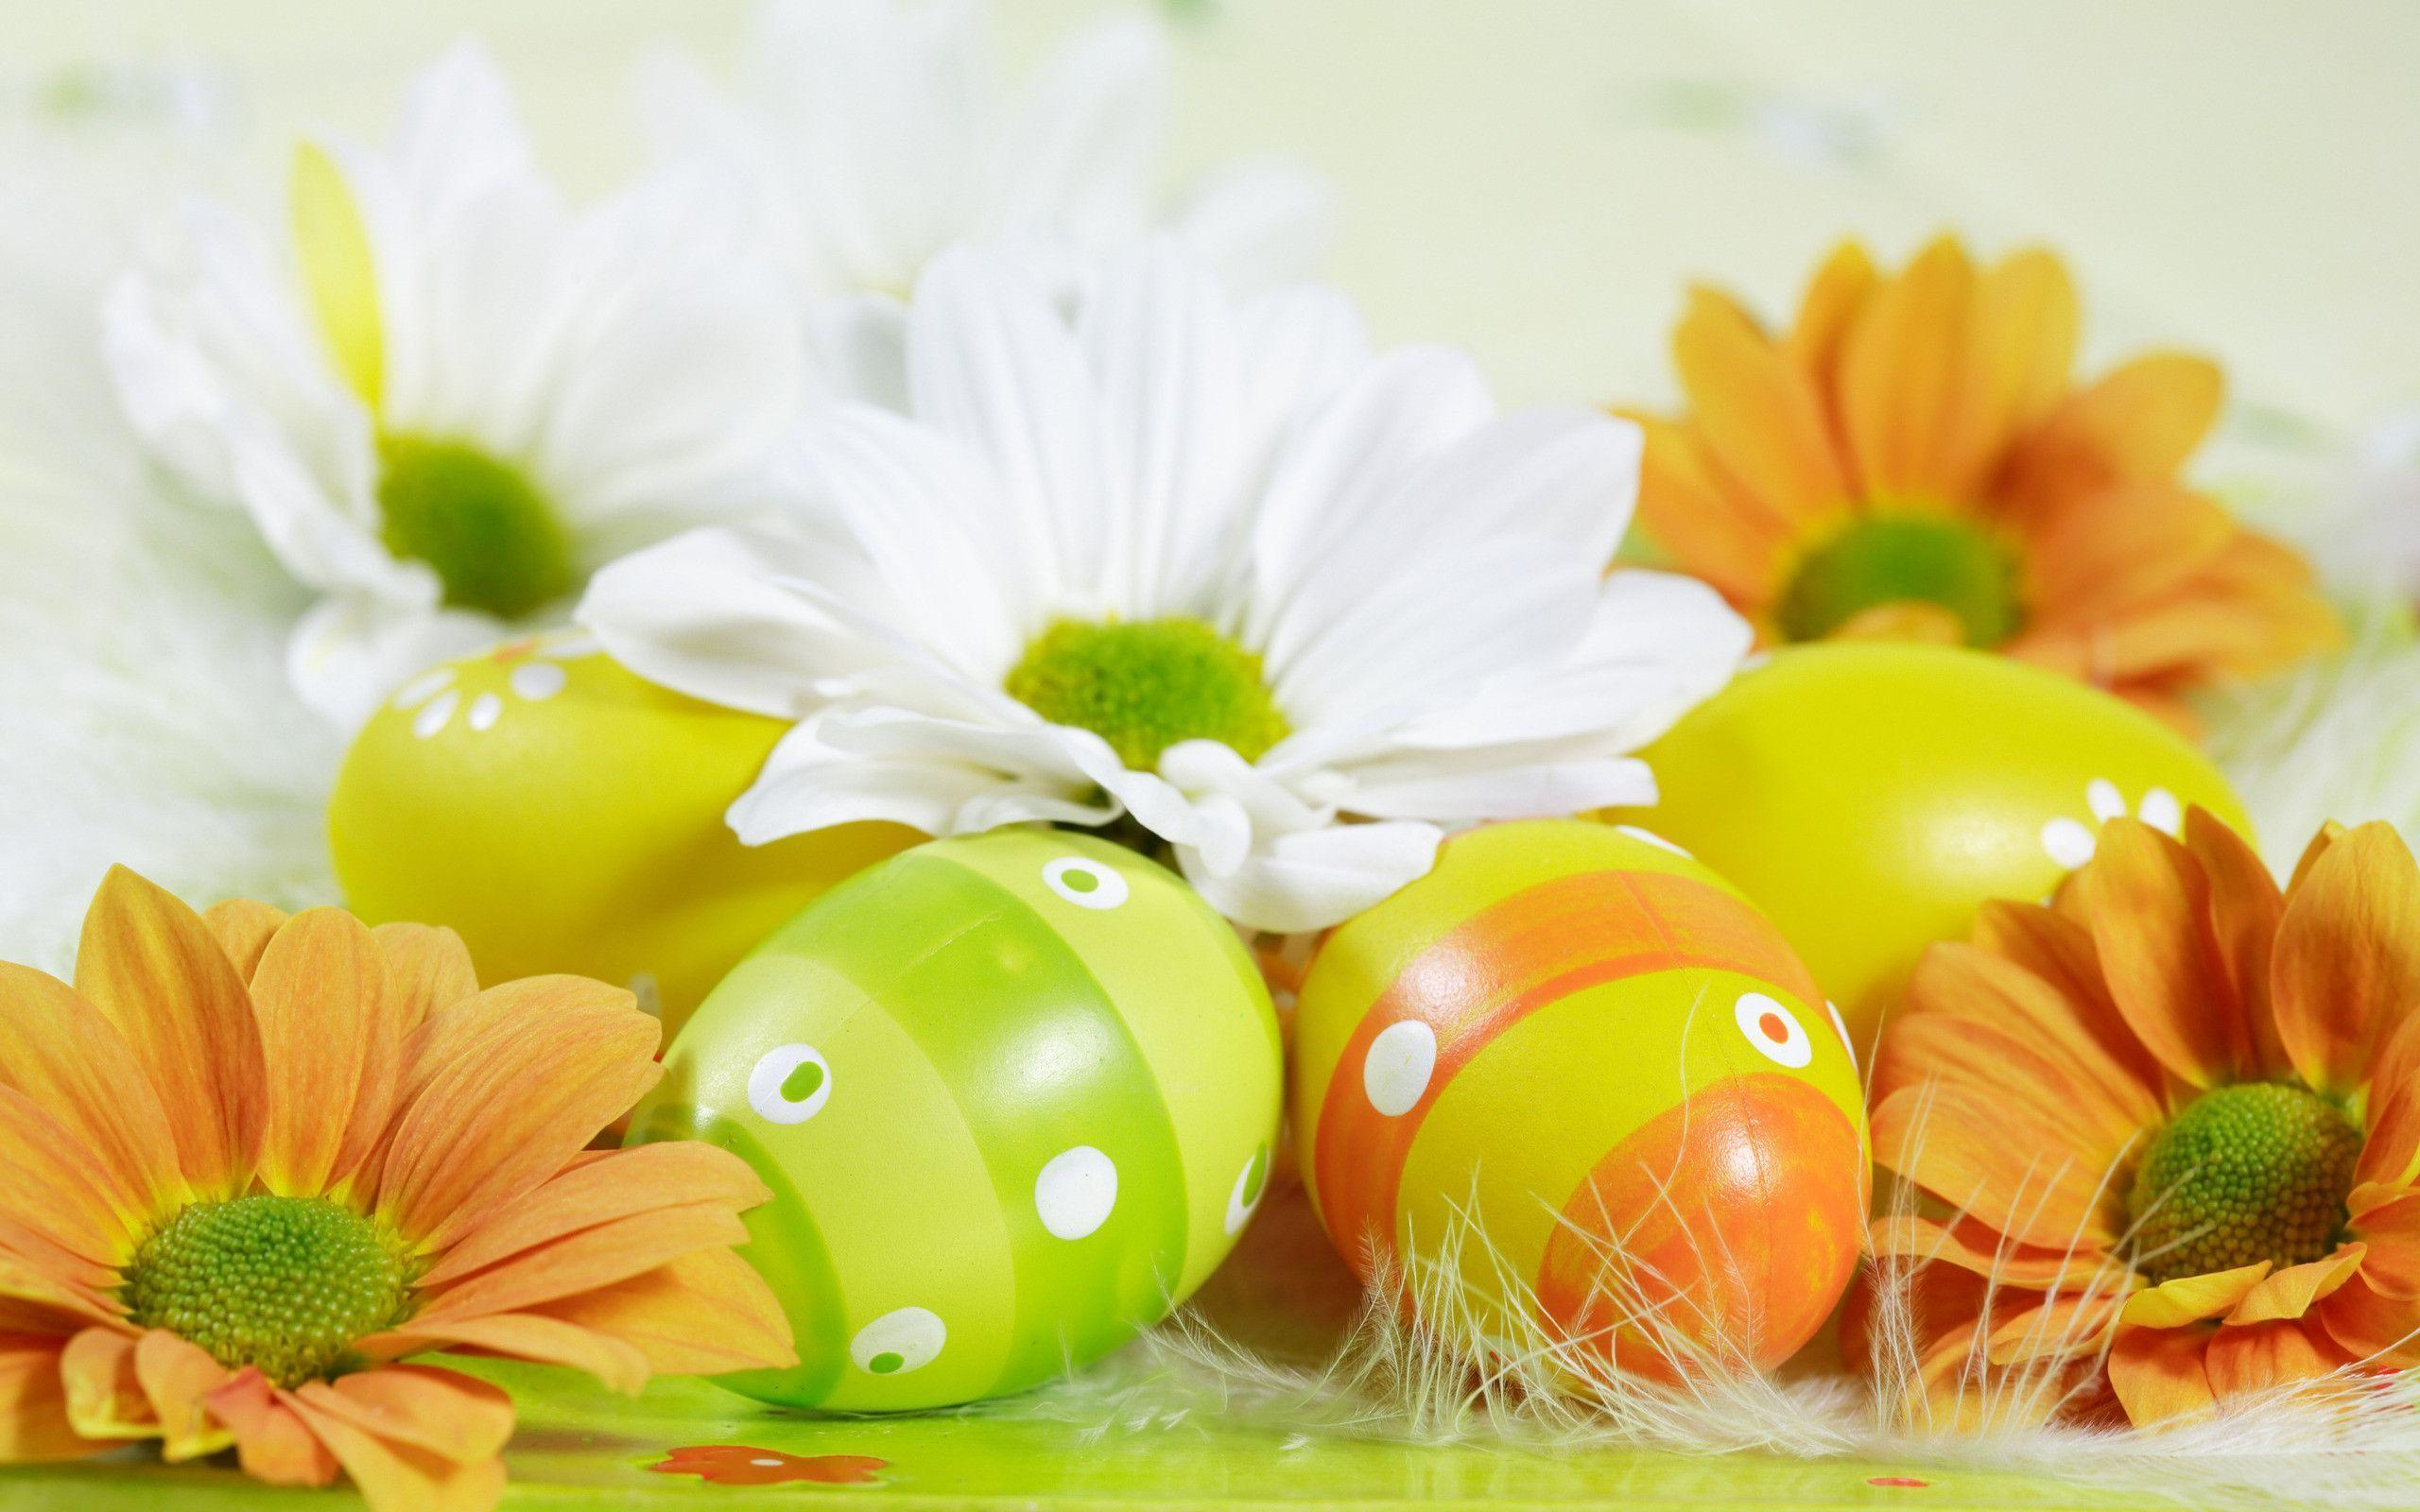 Easter Computer Wallpapers, Desktop Backgrounds 2560x1600 Id: 117651